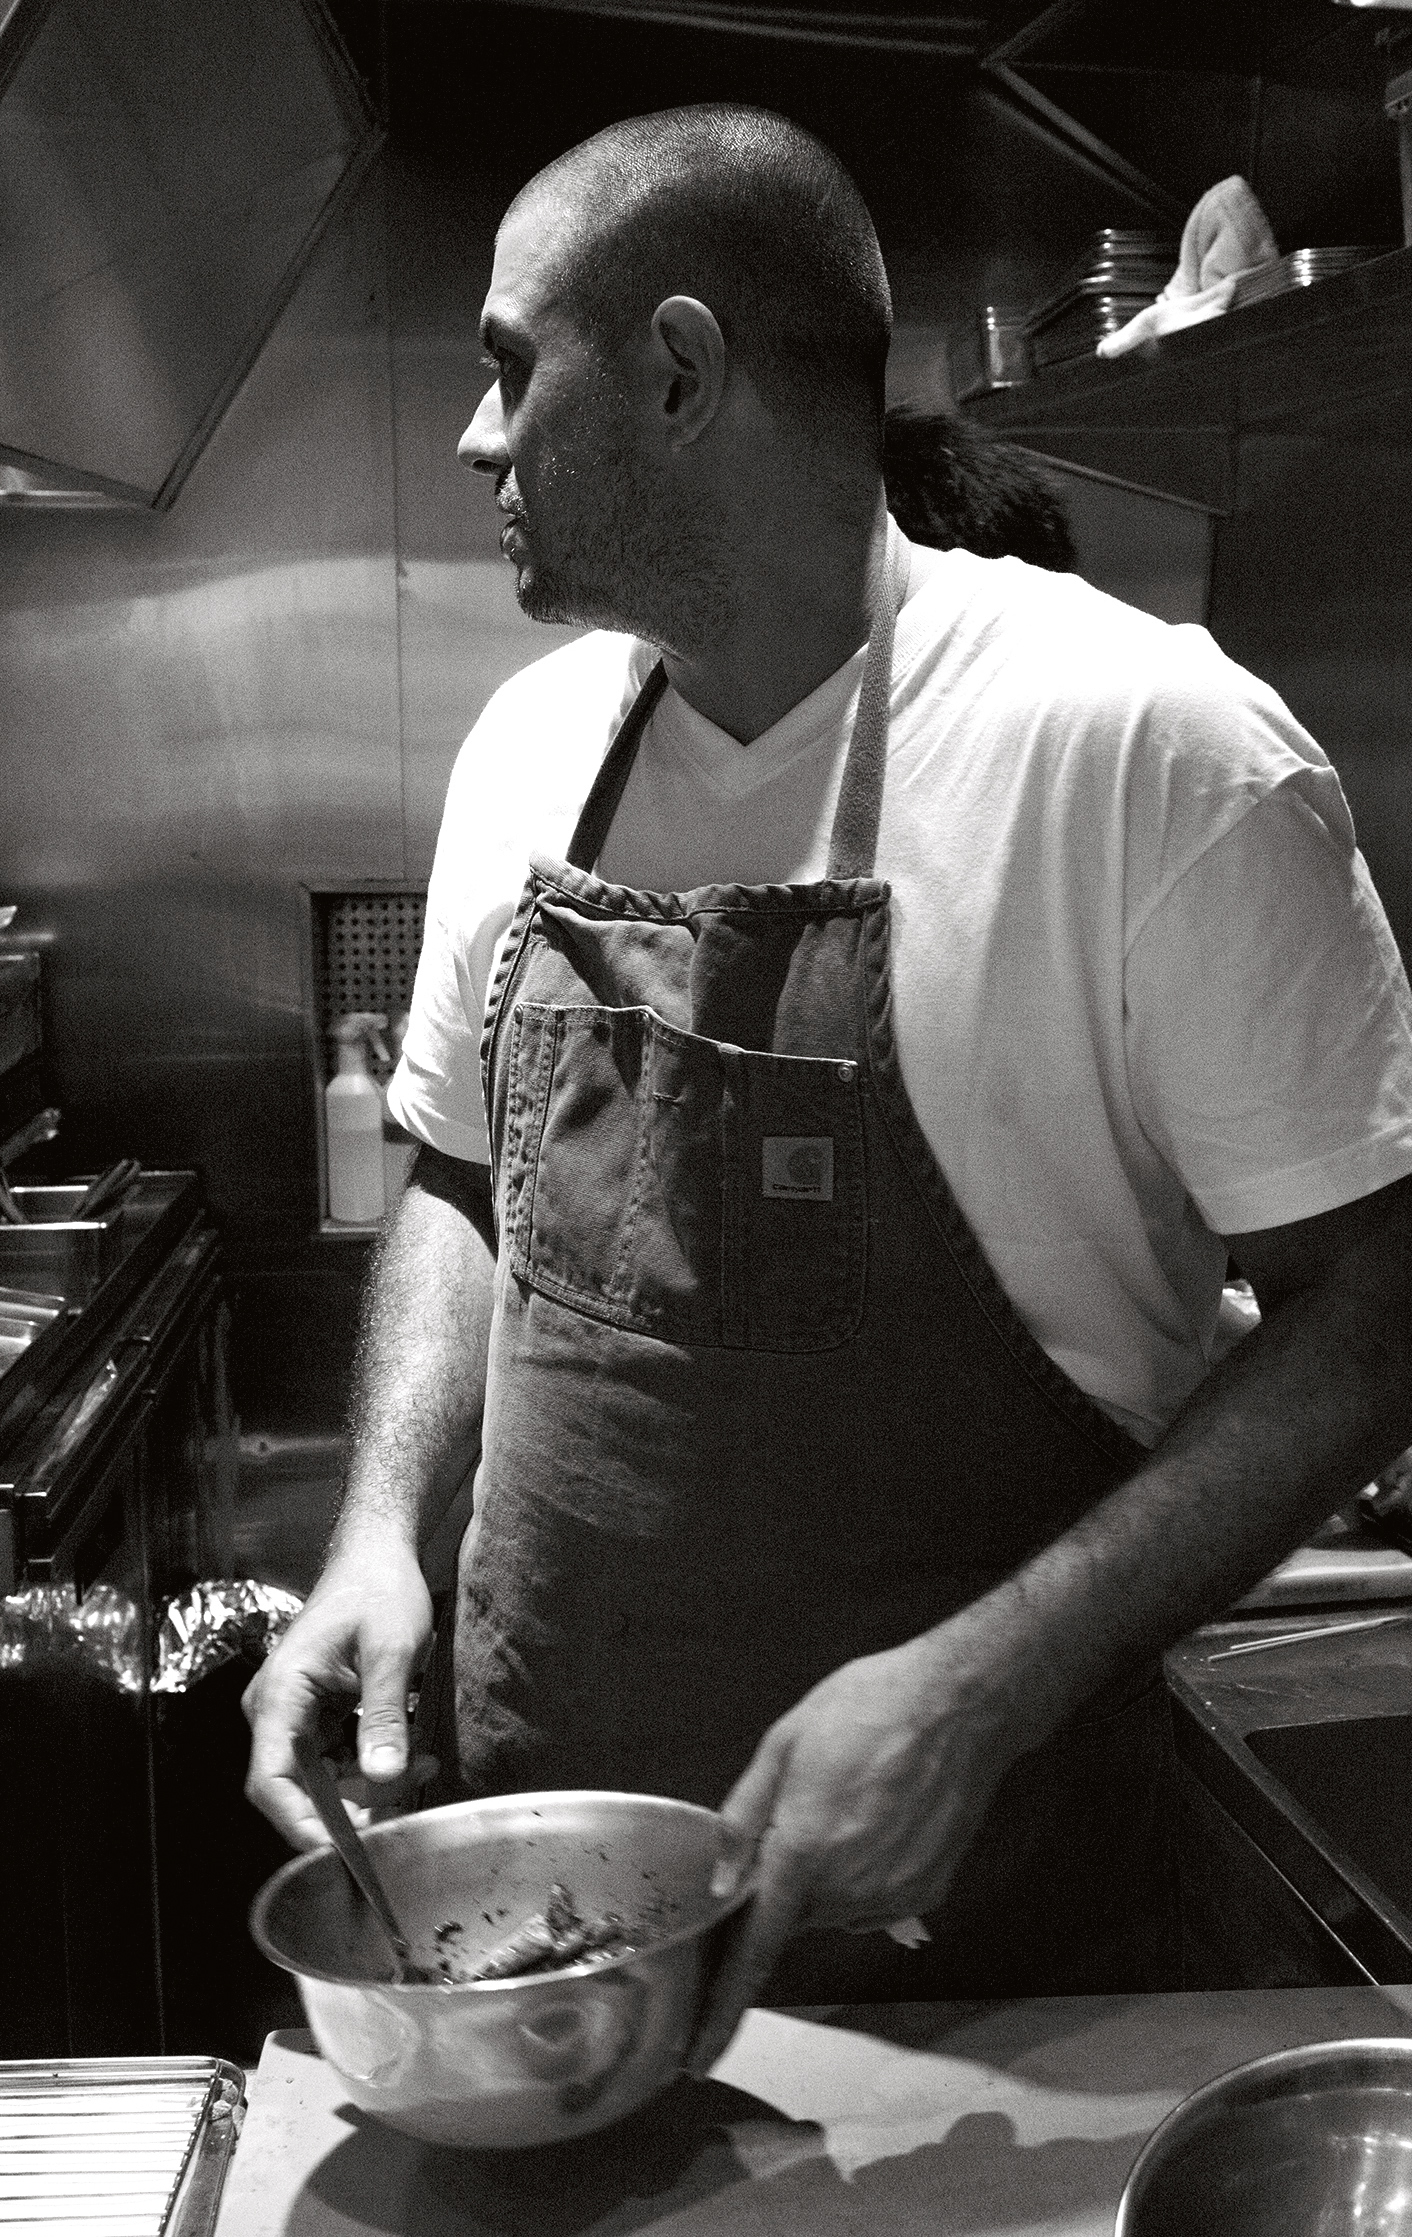 Chicken and Charcoal author and chef Matt Abergel - photograph by Jason Lang and Siu Yan Fung